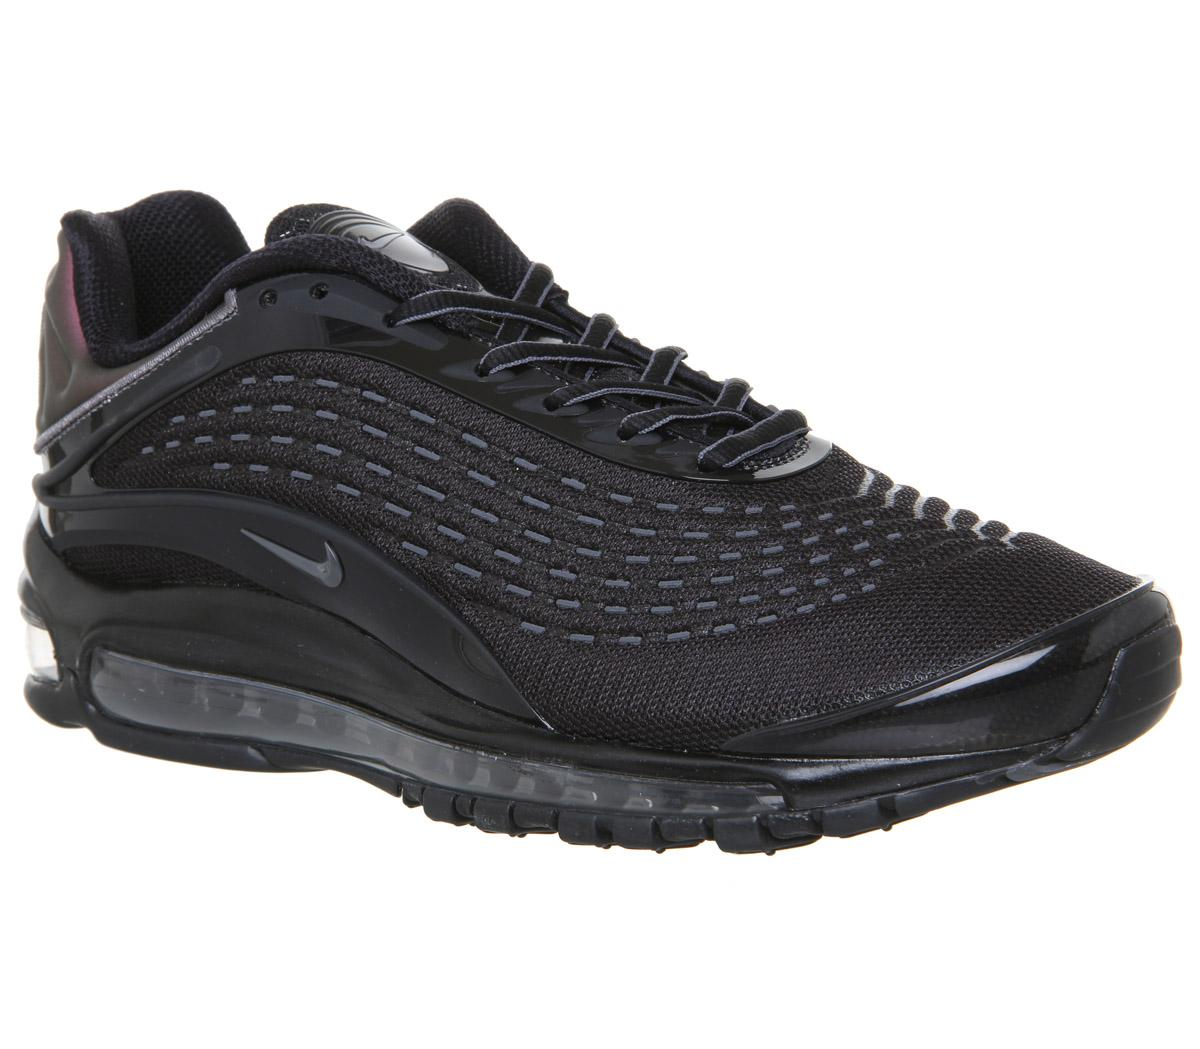 Nike Air Max Deluxe Trainers Black Mono